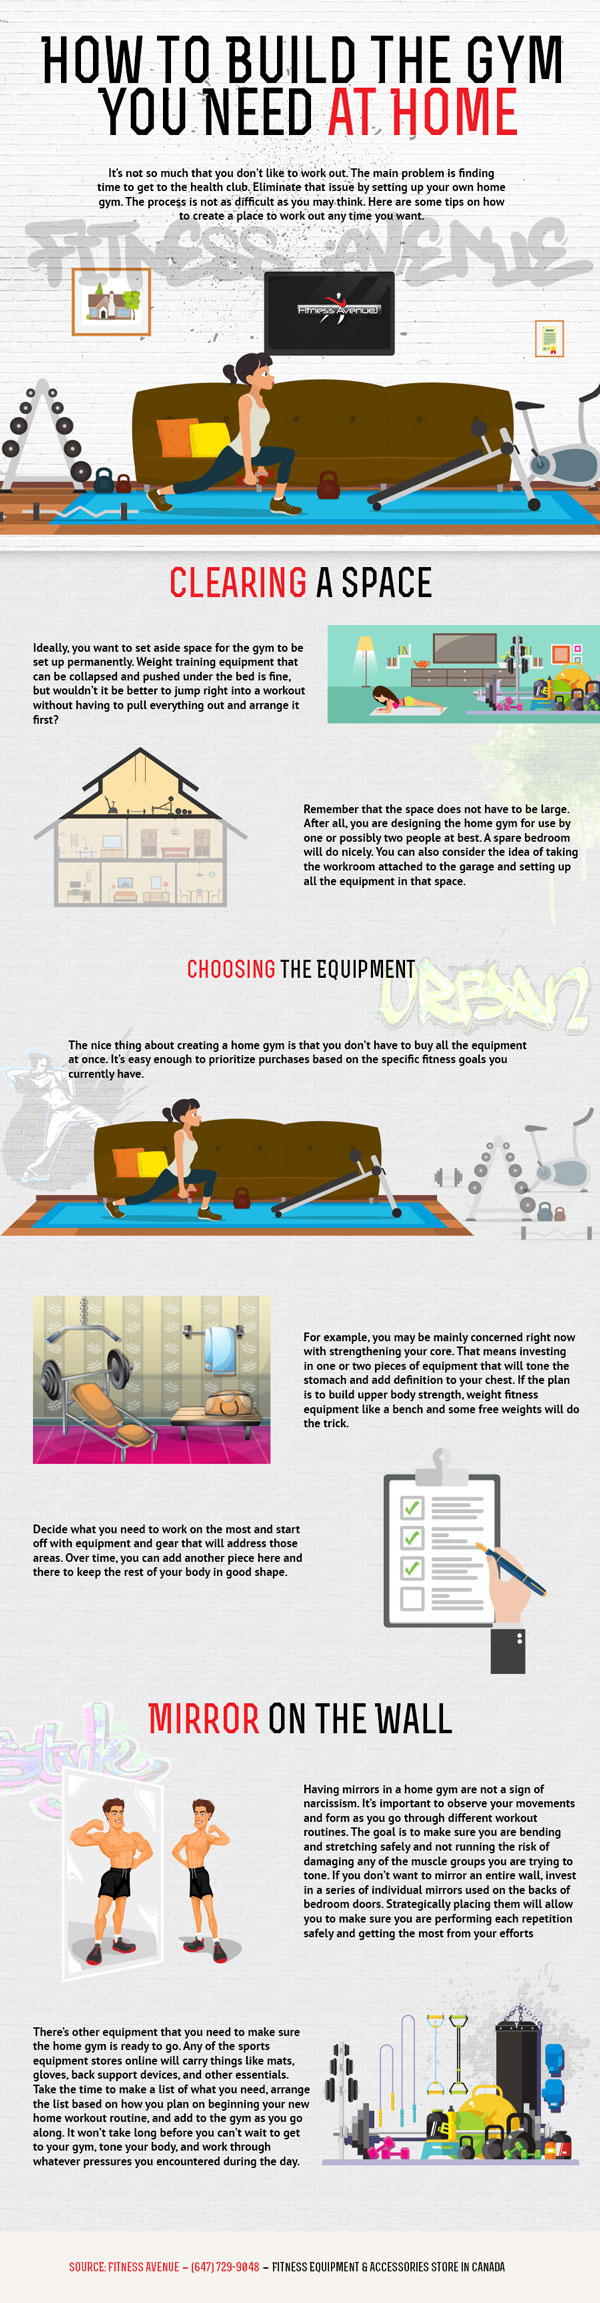 home-gym-how-to